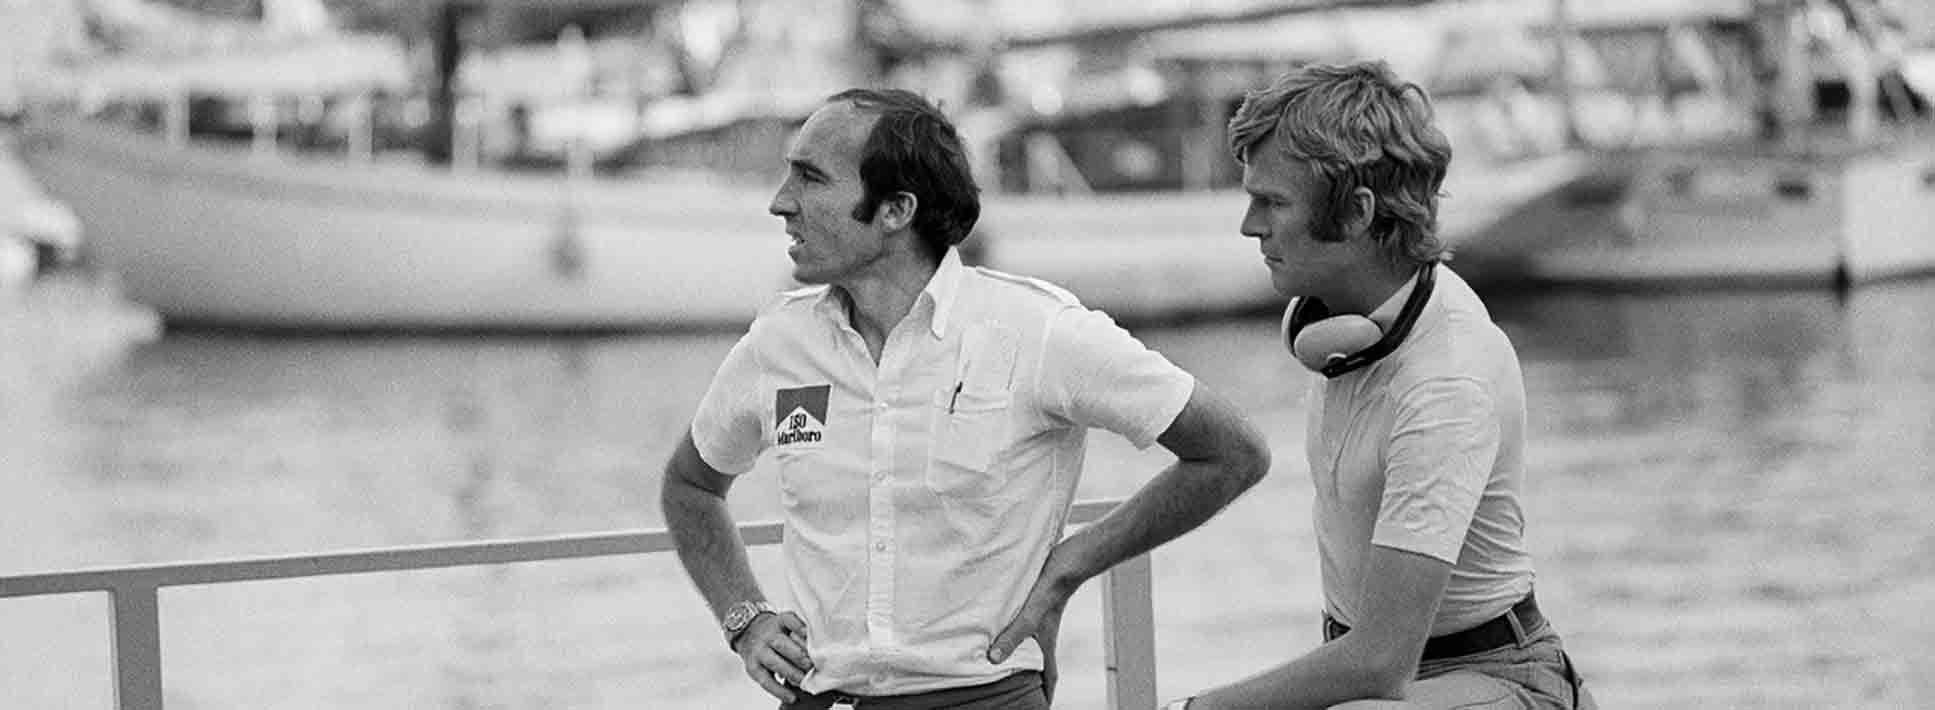 STATEMENT FROM SIR FRANK WILLIAMS